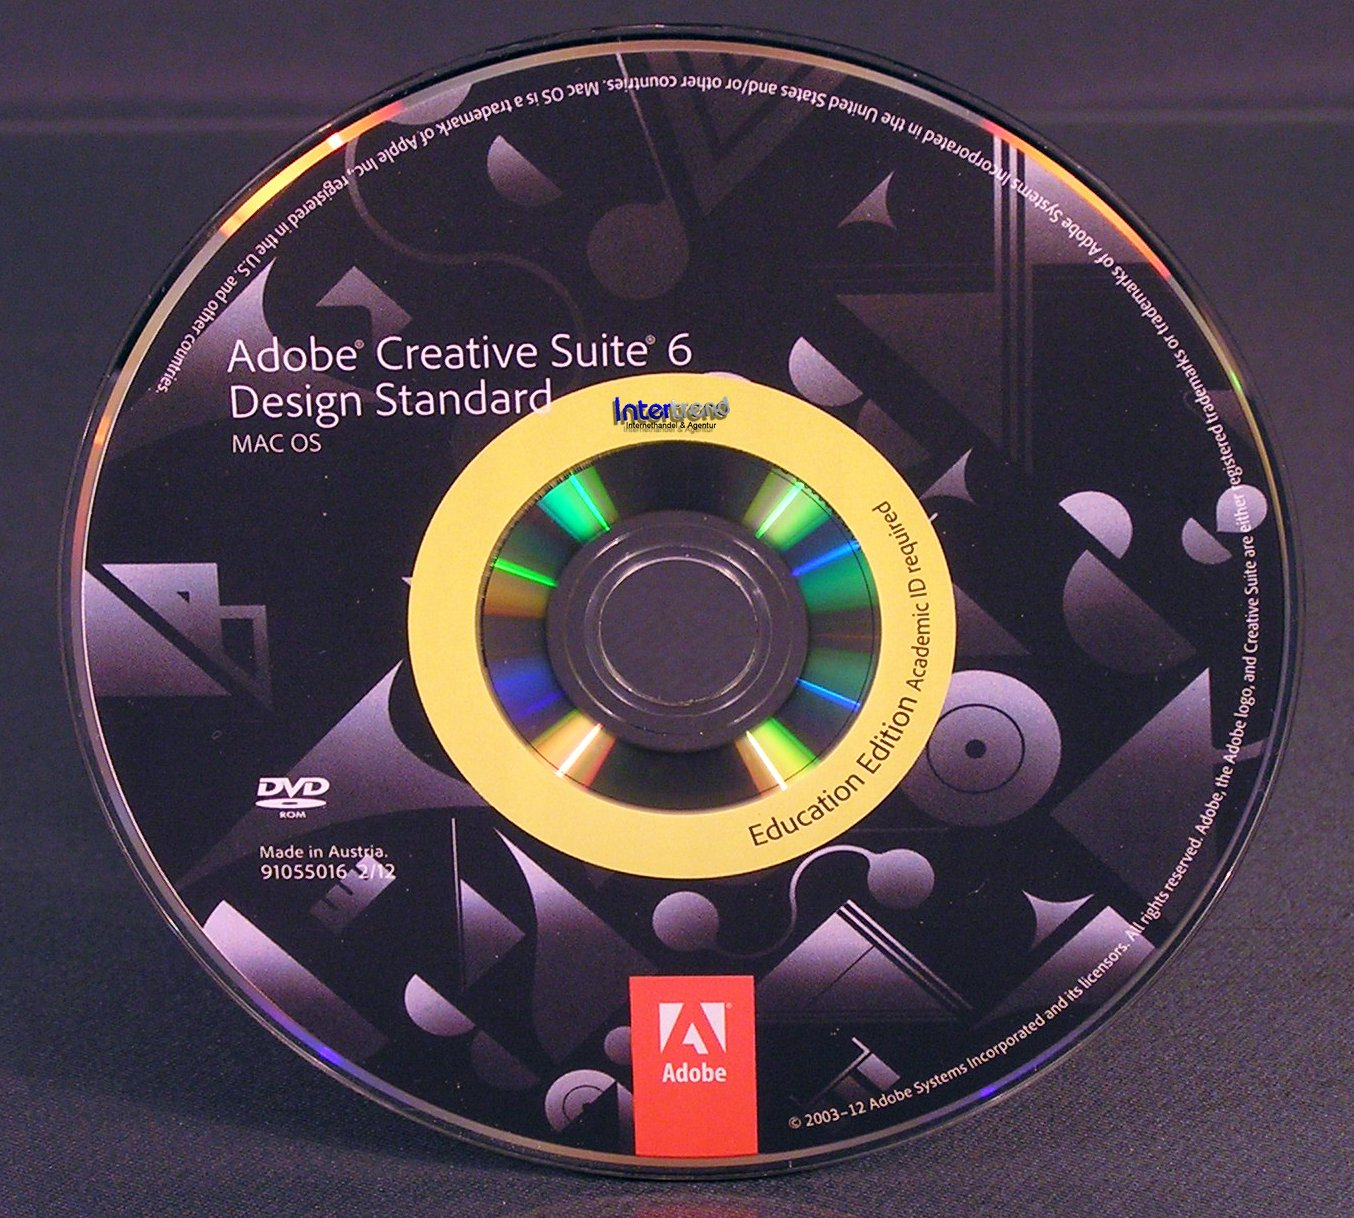 Adobe Creative Suite 6 Help